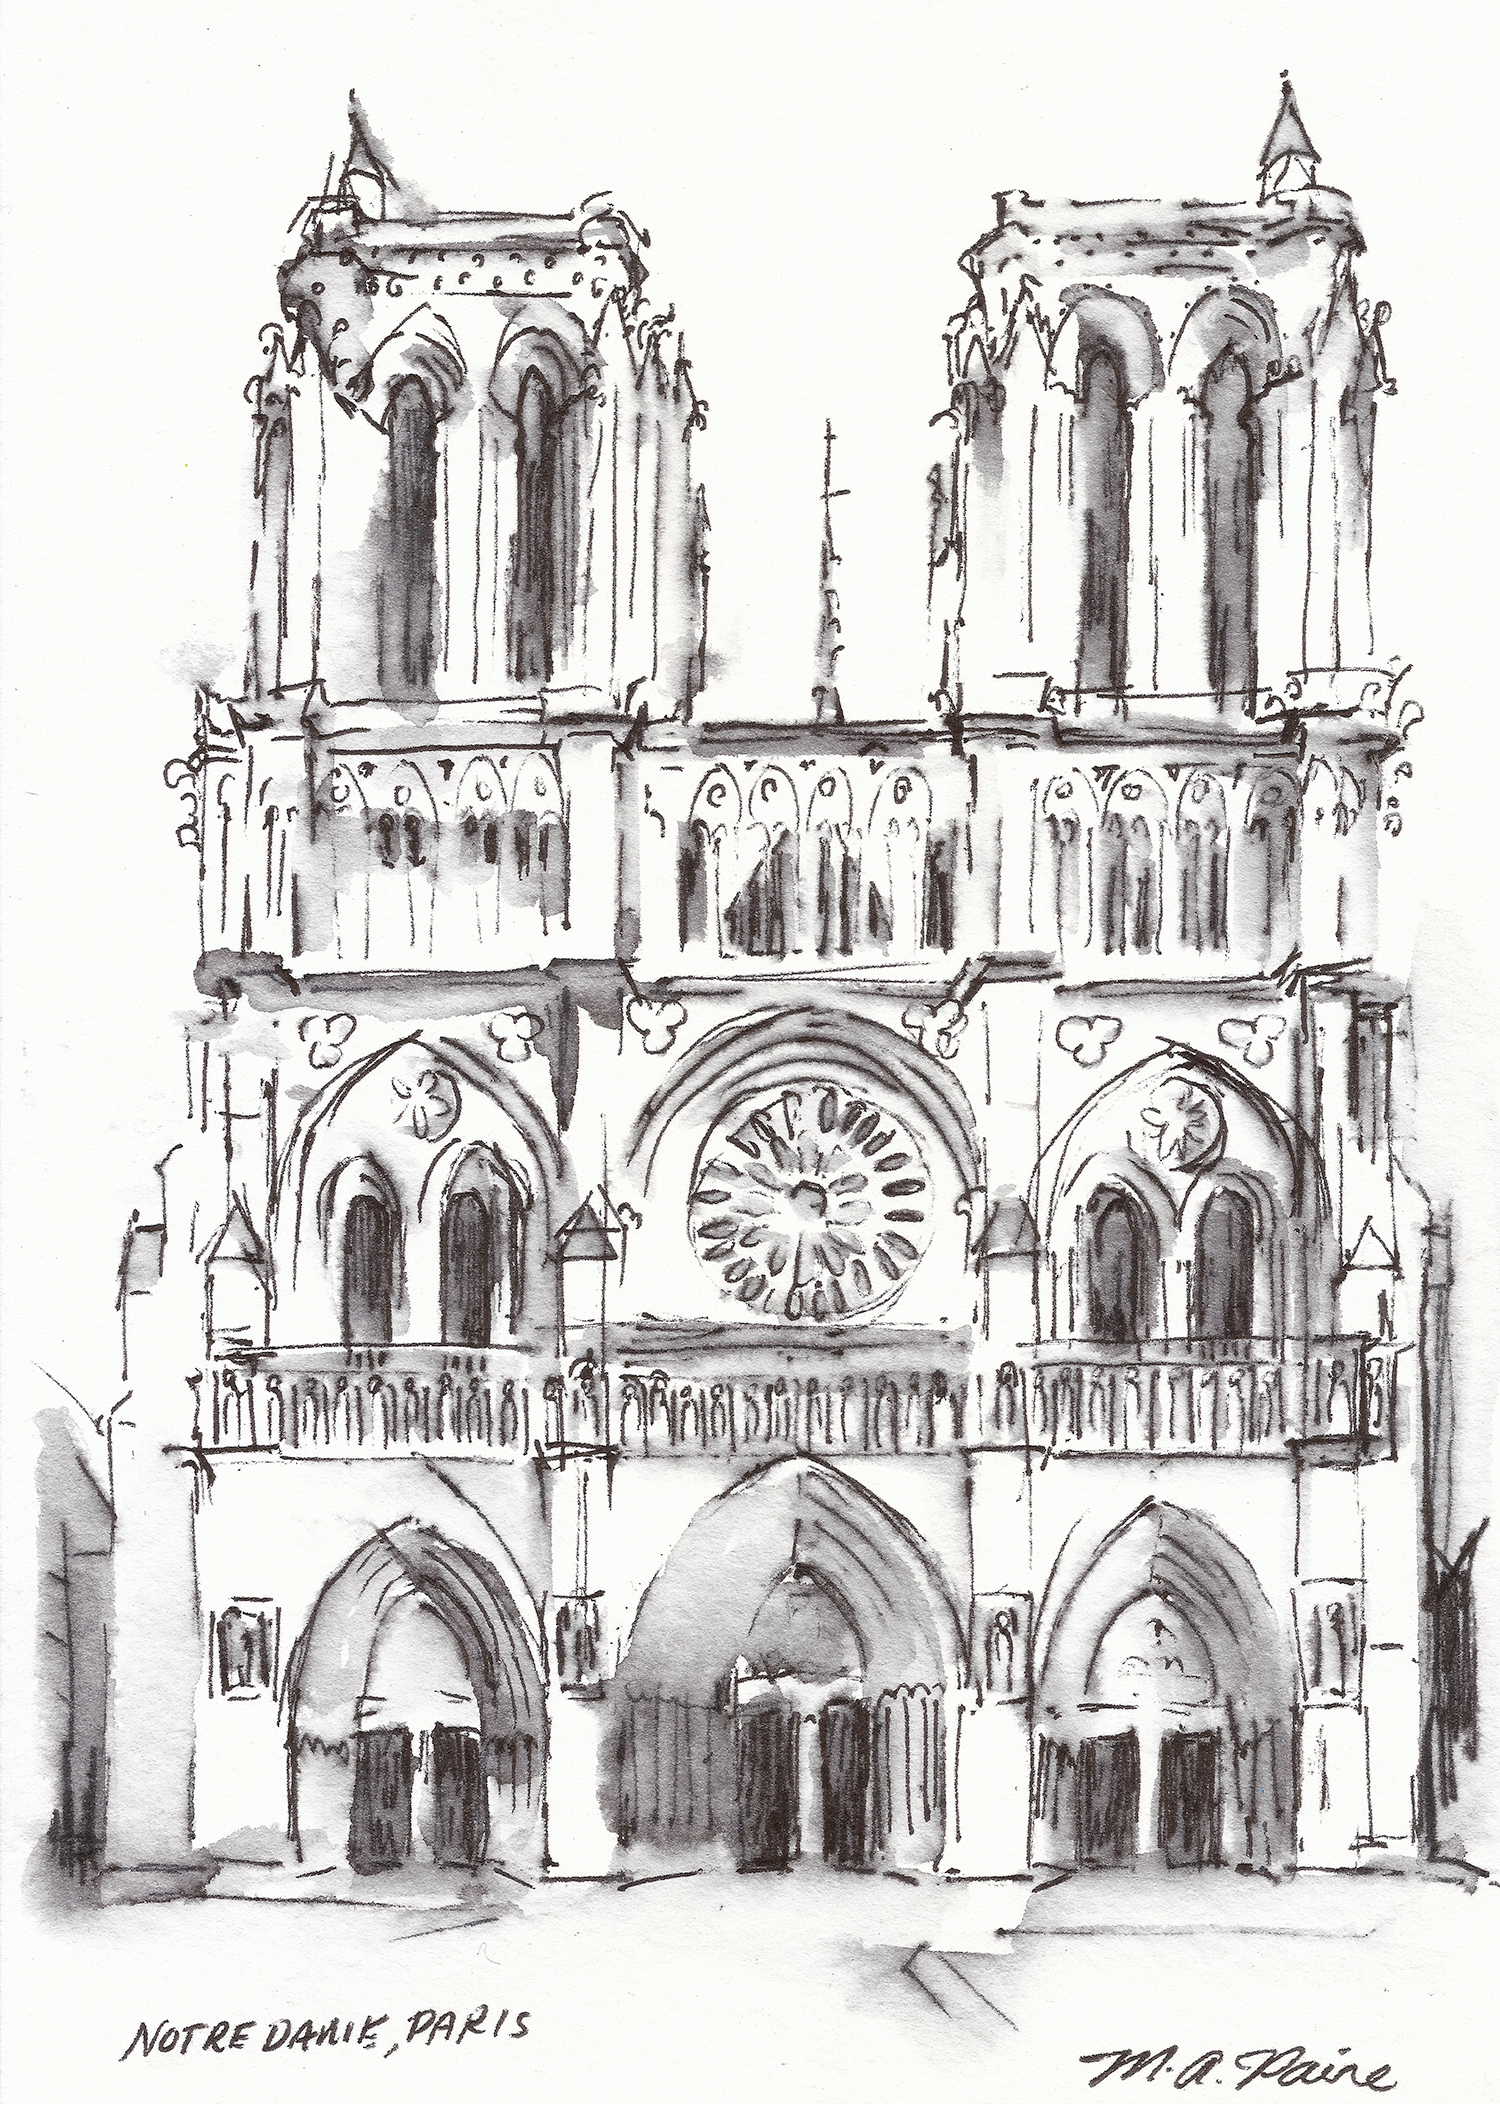 Notredameparisdrawing sm chb7pe